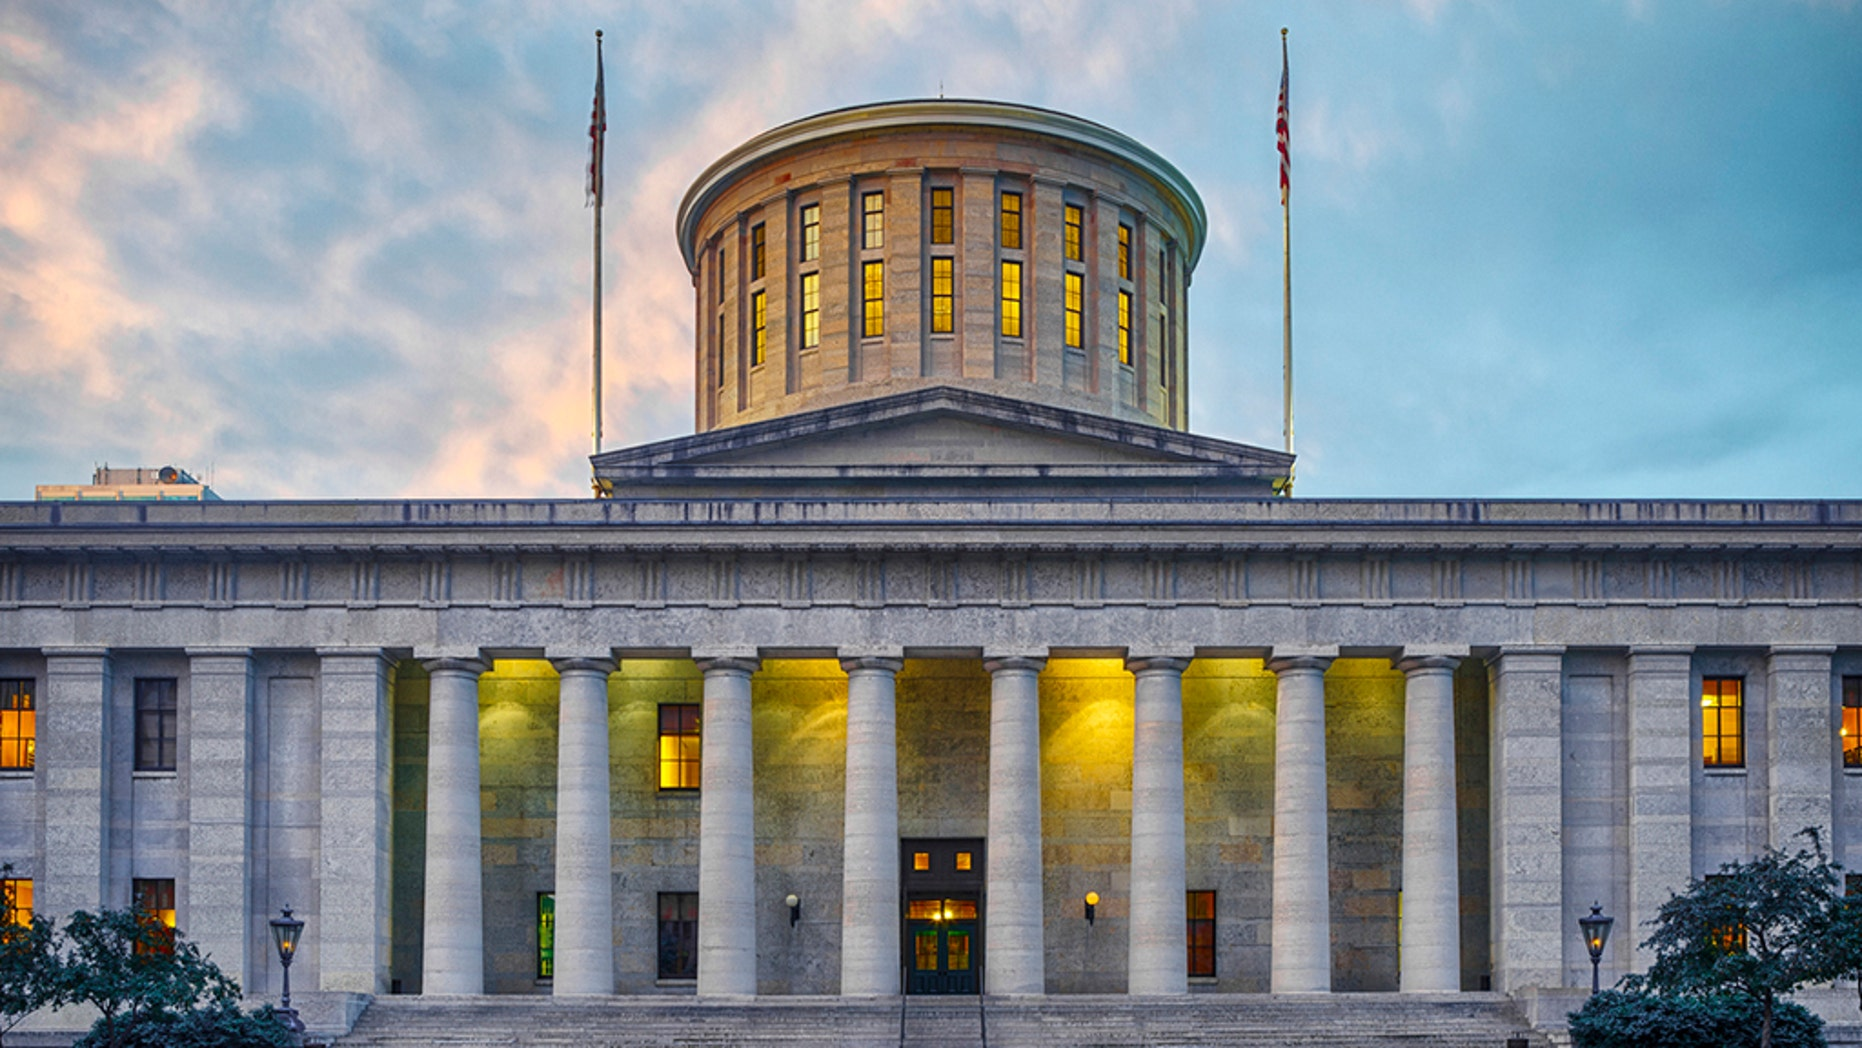 The Capitol Building for the state of Ohio.